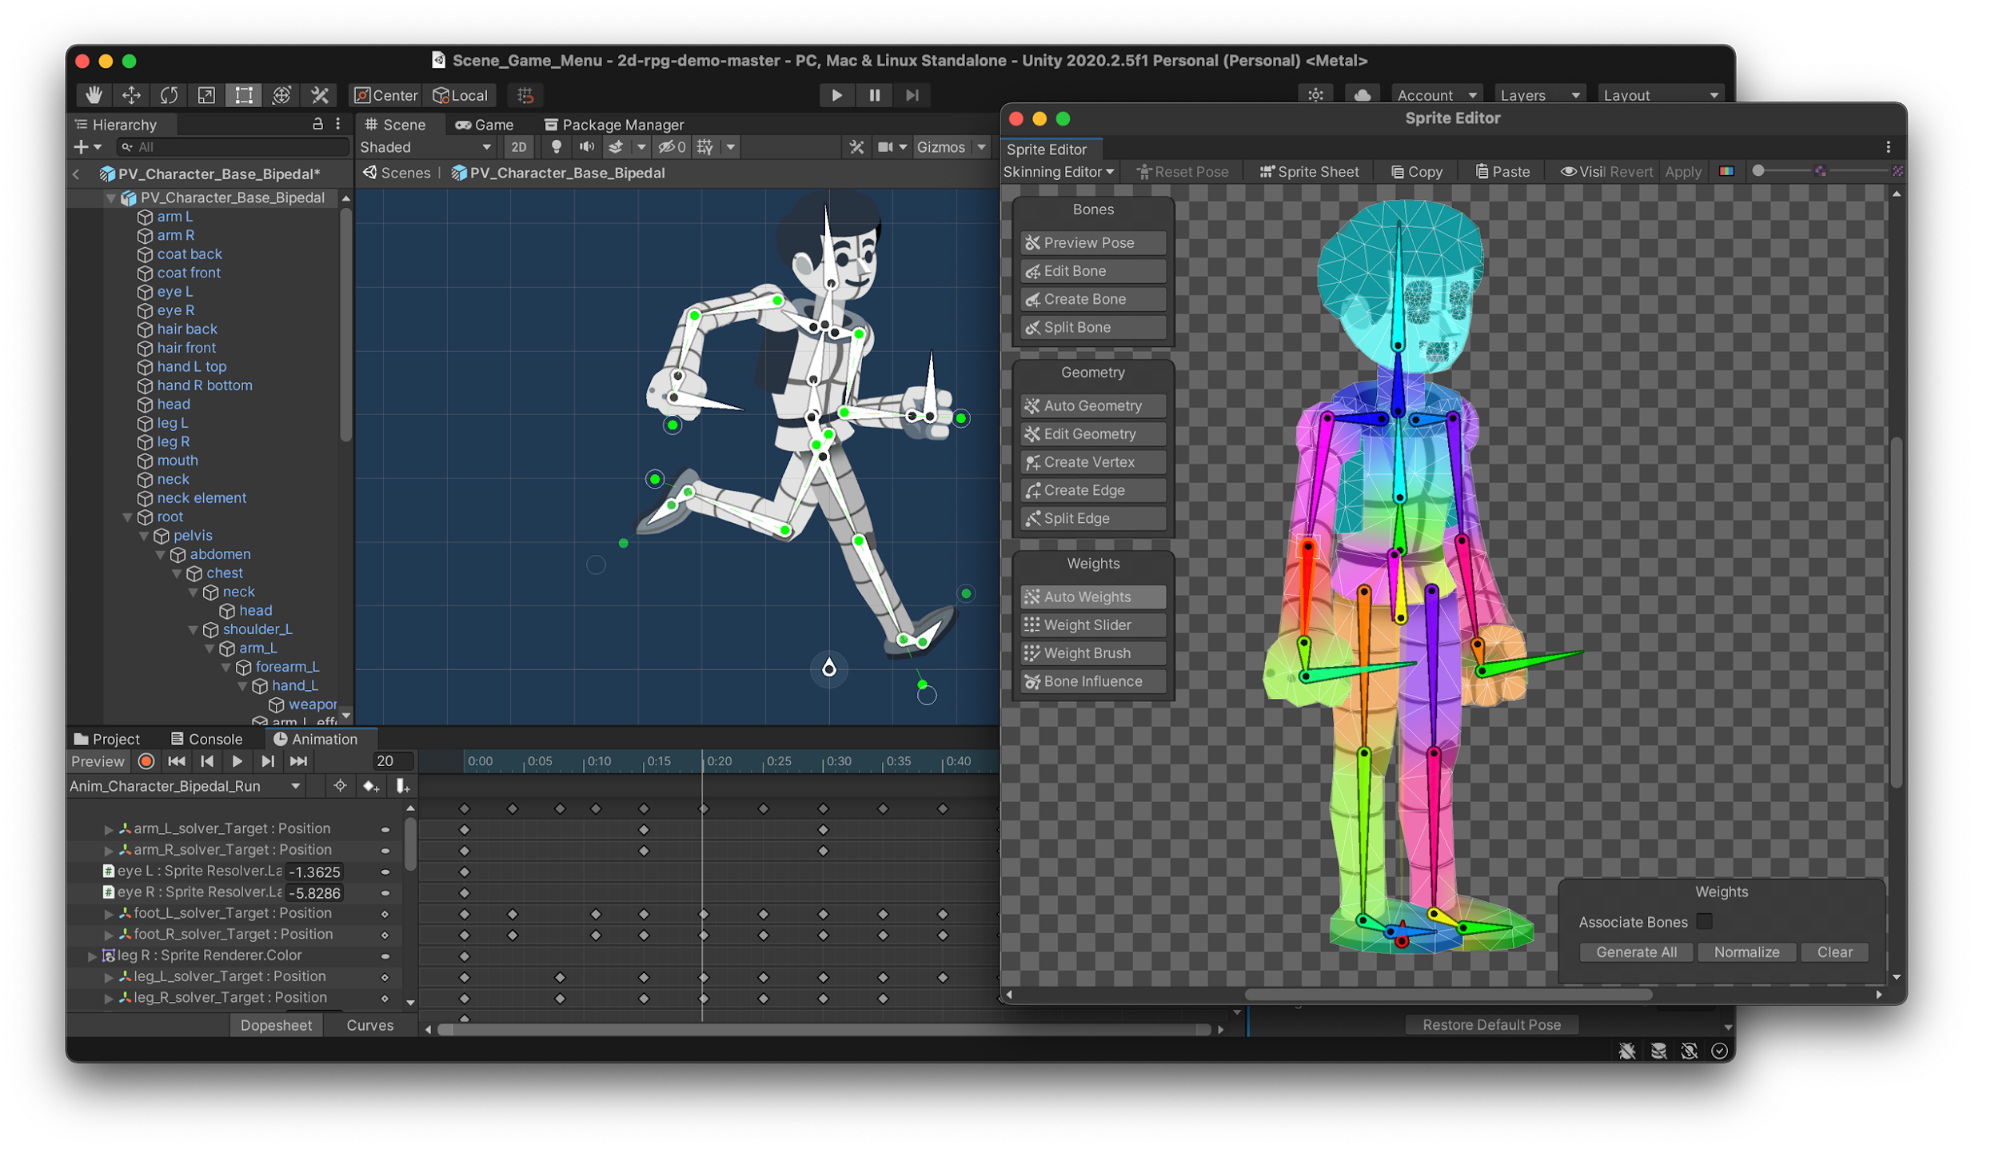 Image of character model